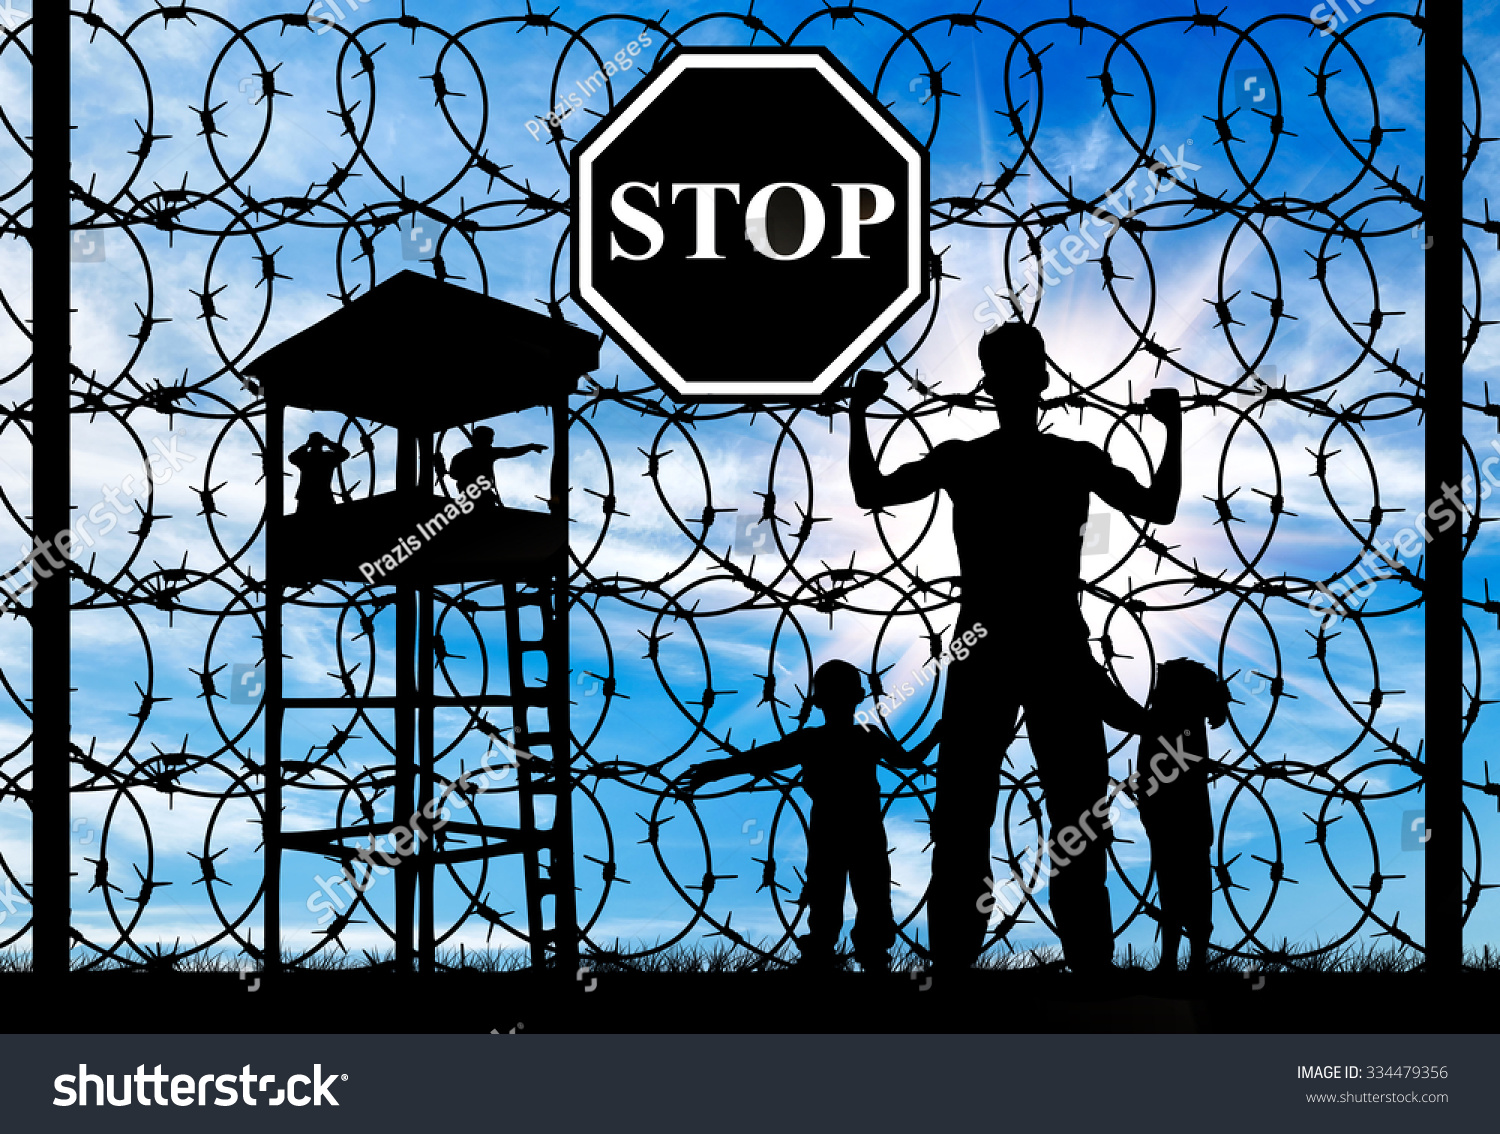 Royalty-free Concept of refugee. Silhouette of… #334479356 Stock ...